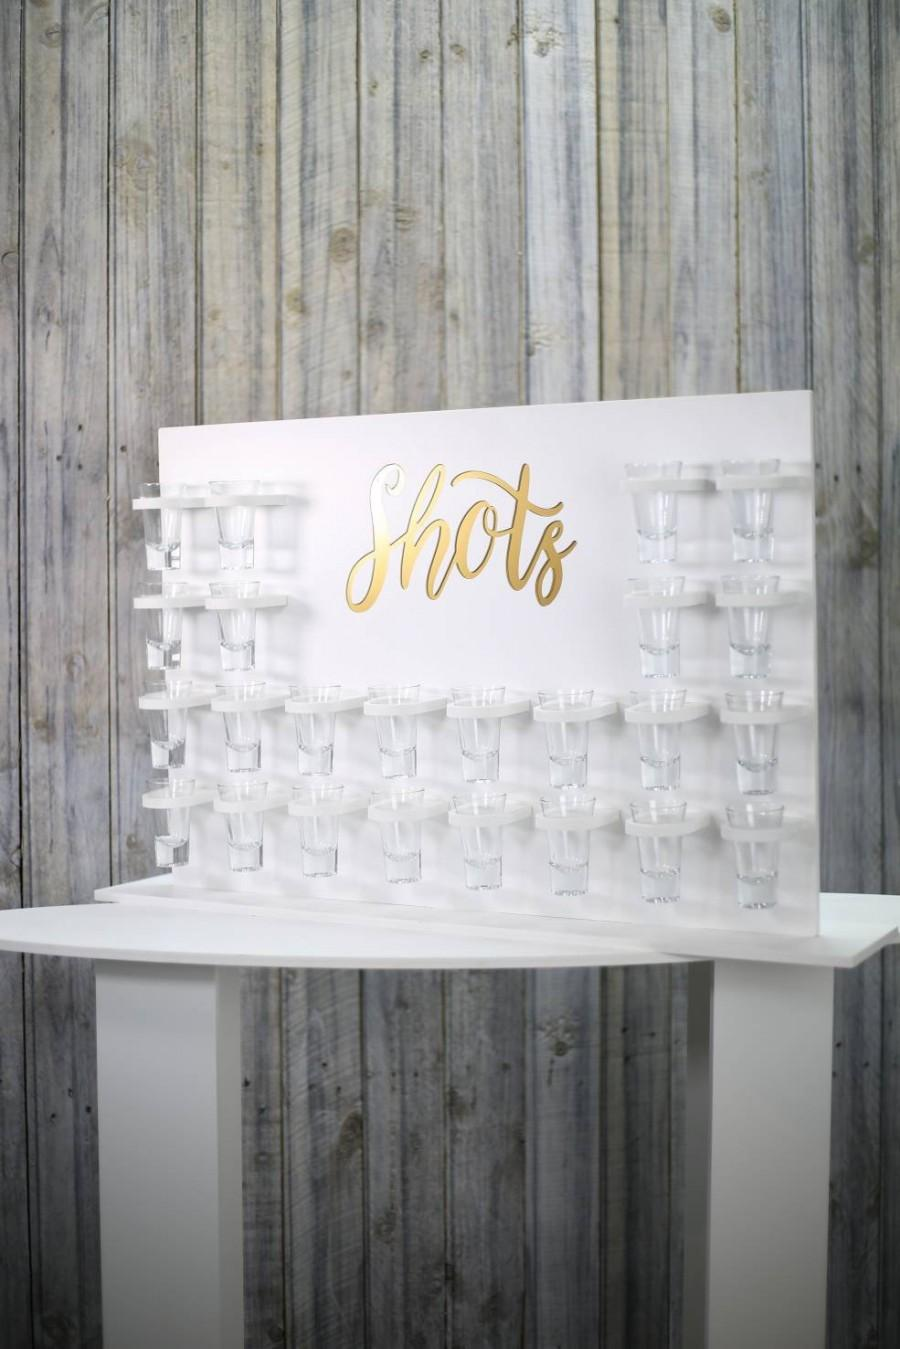 Wedding - Shots Wall White With Acrylic Gold Shots Text Various Size Options Holds 16/24/40/62 Shots. Freestanding table top stand